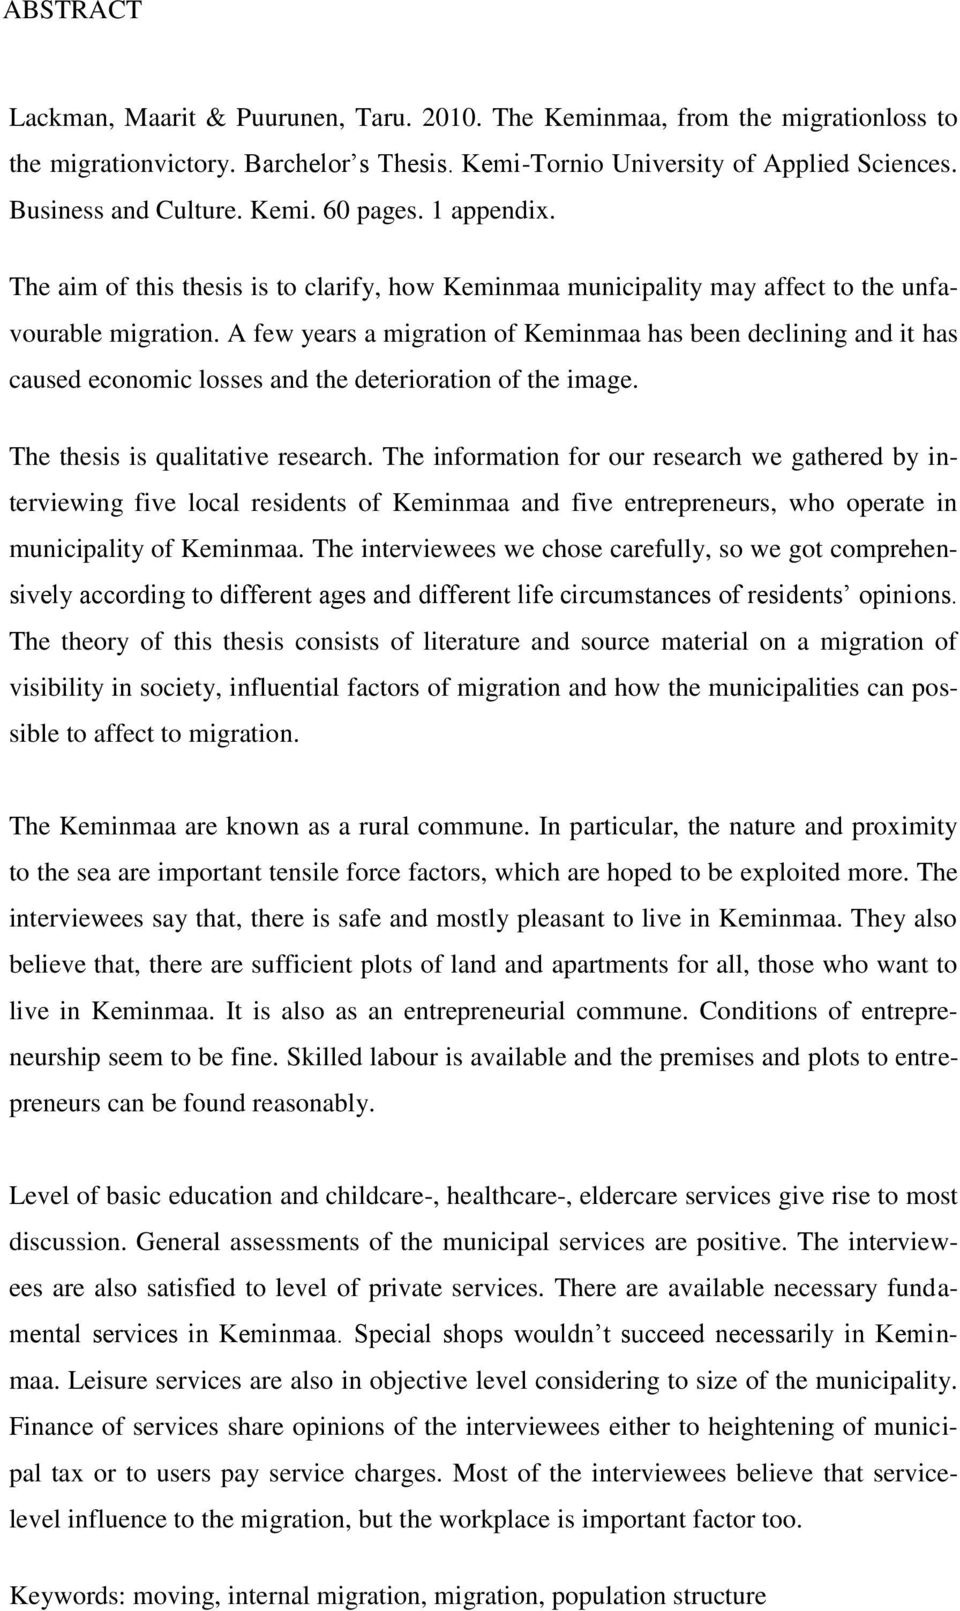 A few years a migration of Keminmaa has been declining and it has caused economic losses and the deterioration of the image. The thesis is qualitative research.